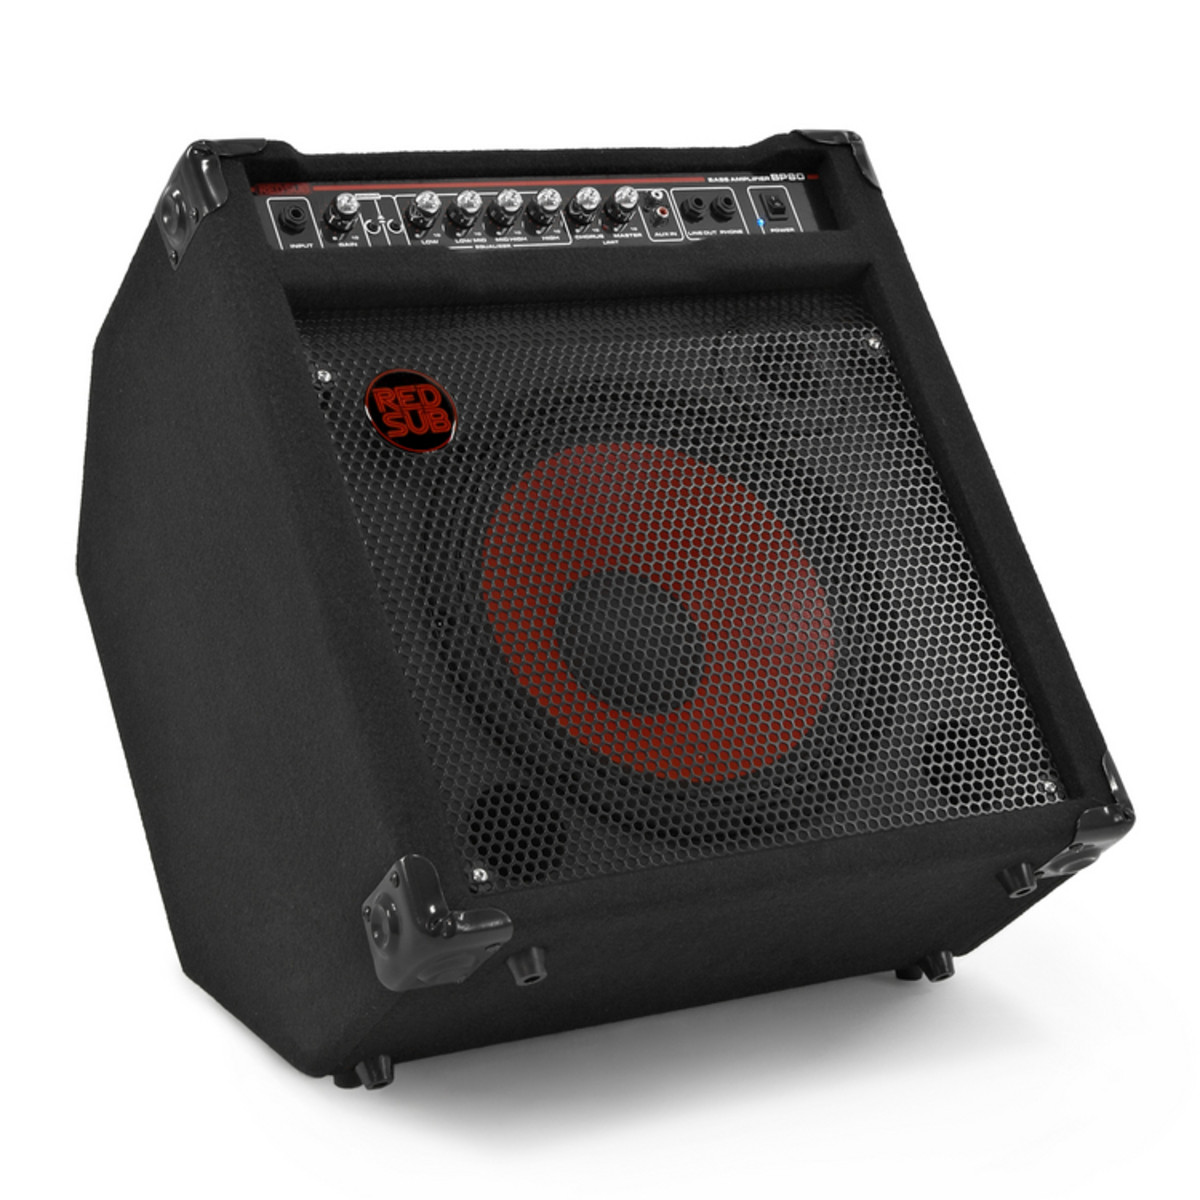 redsub bp80 80w bass guitar amplifier nearly new at. Black Bedroom Furniture Sets. Home Design Ideas